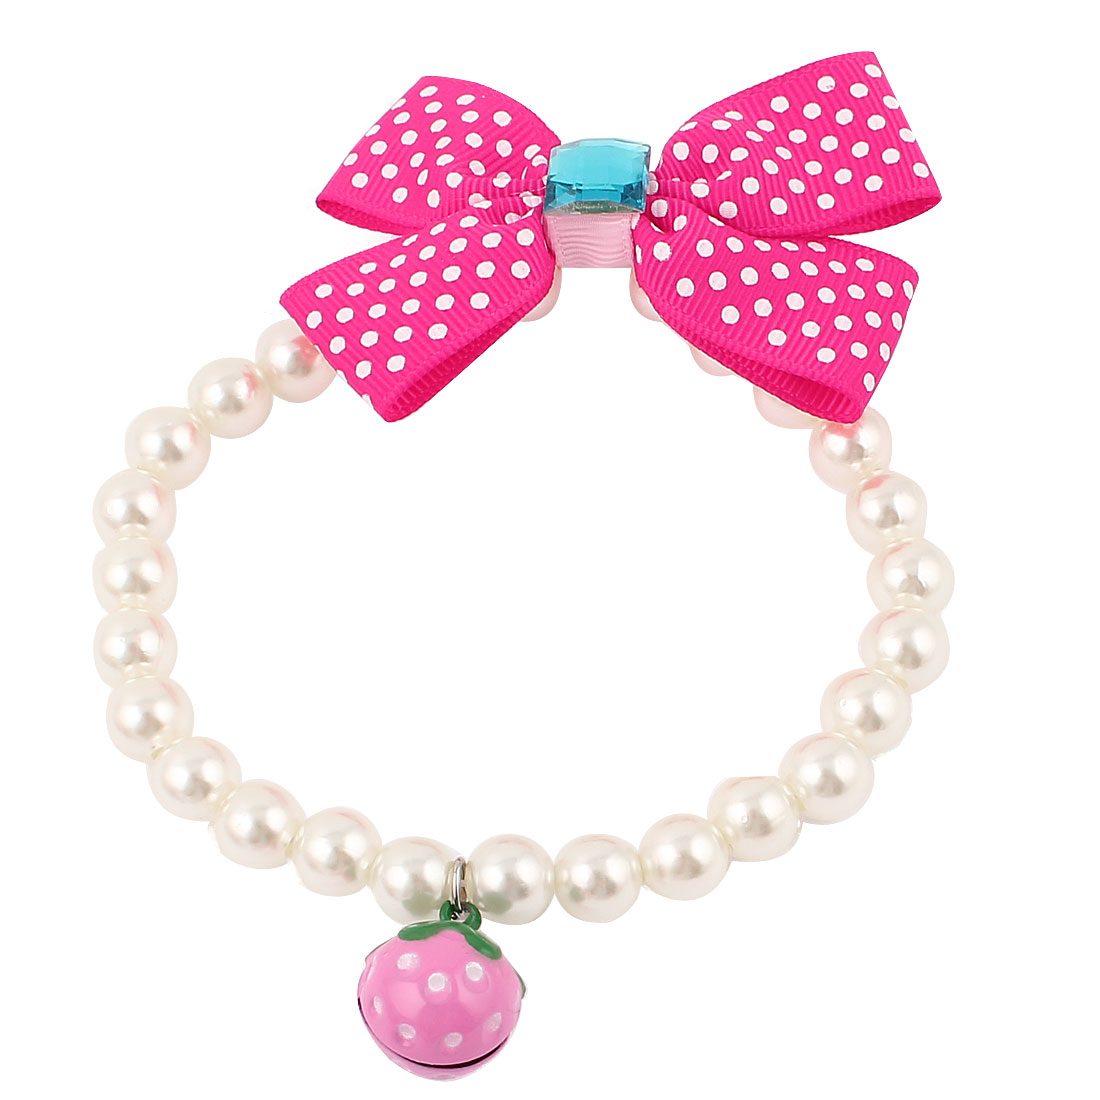 Metal Bell Pendant Bowtie Accent Pet Dog Plastic Beads Pearls Collar Necklace White Fuchsia S